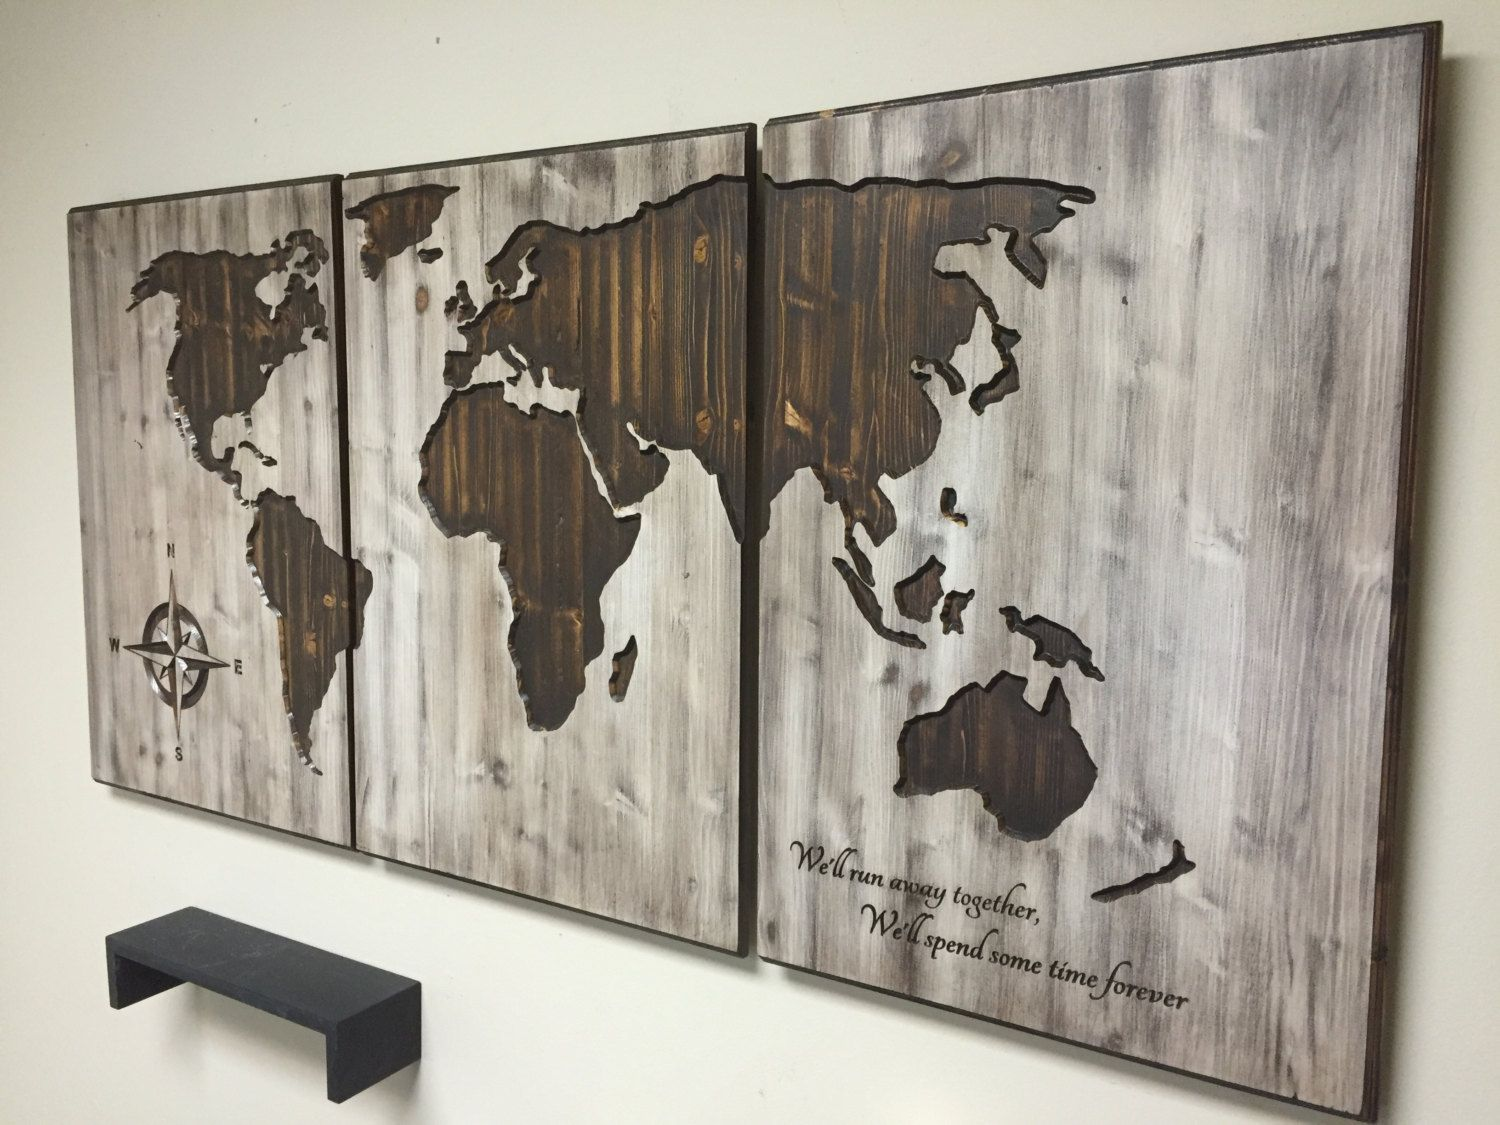 World Map Wood Wall Art world map home decor, wood wall art, wooden map, wooden, 3 panel